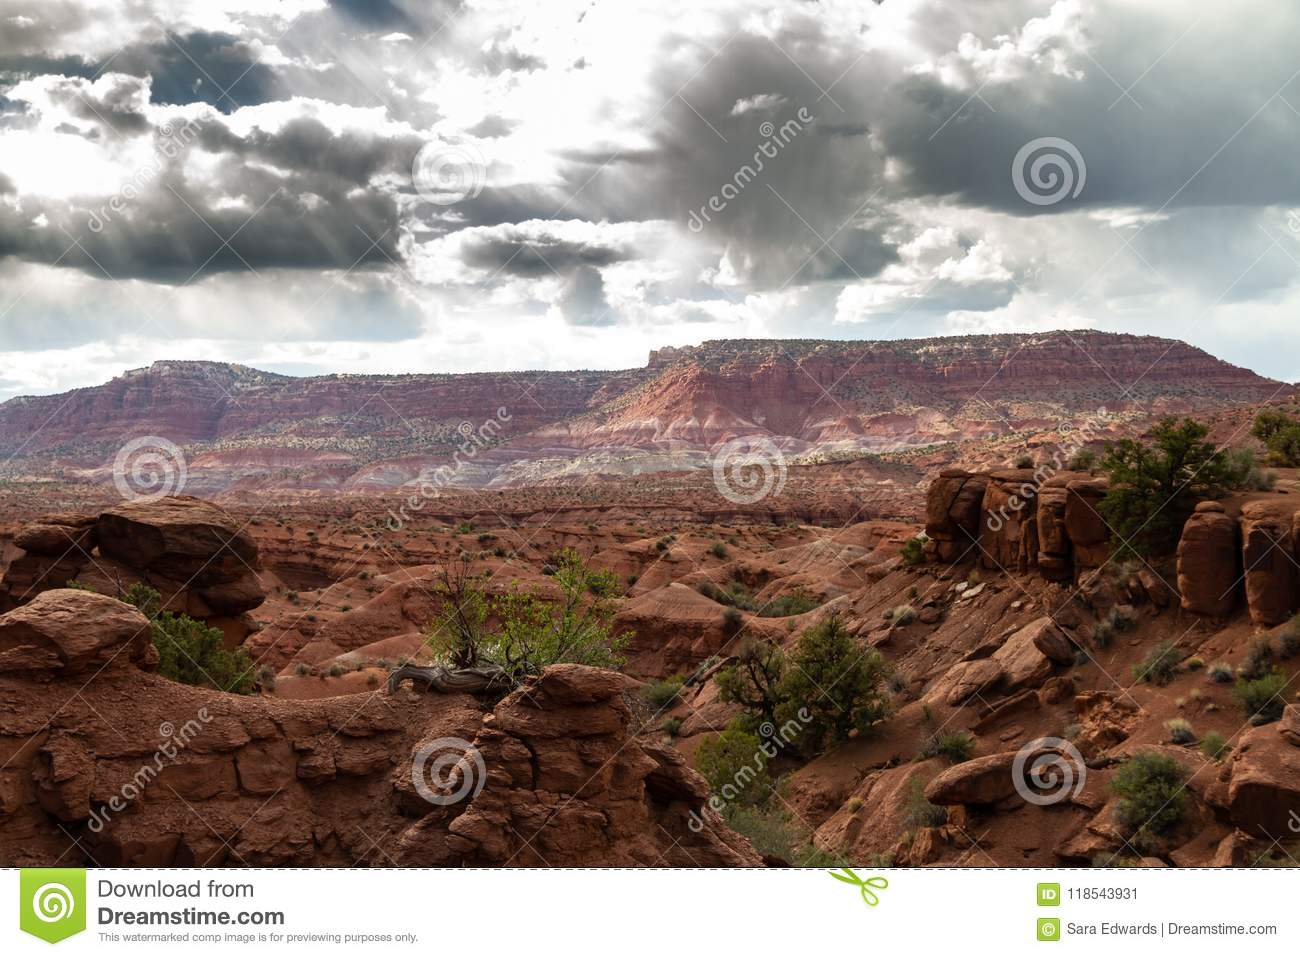 Spectaculaire onweerswolken over Groot Nationaal Monument trap-Escalante in Paria, Utah